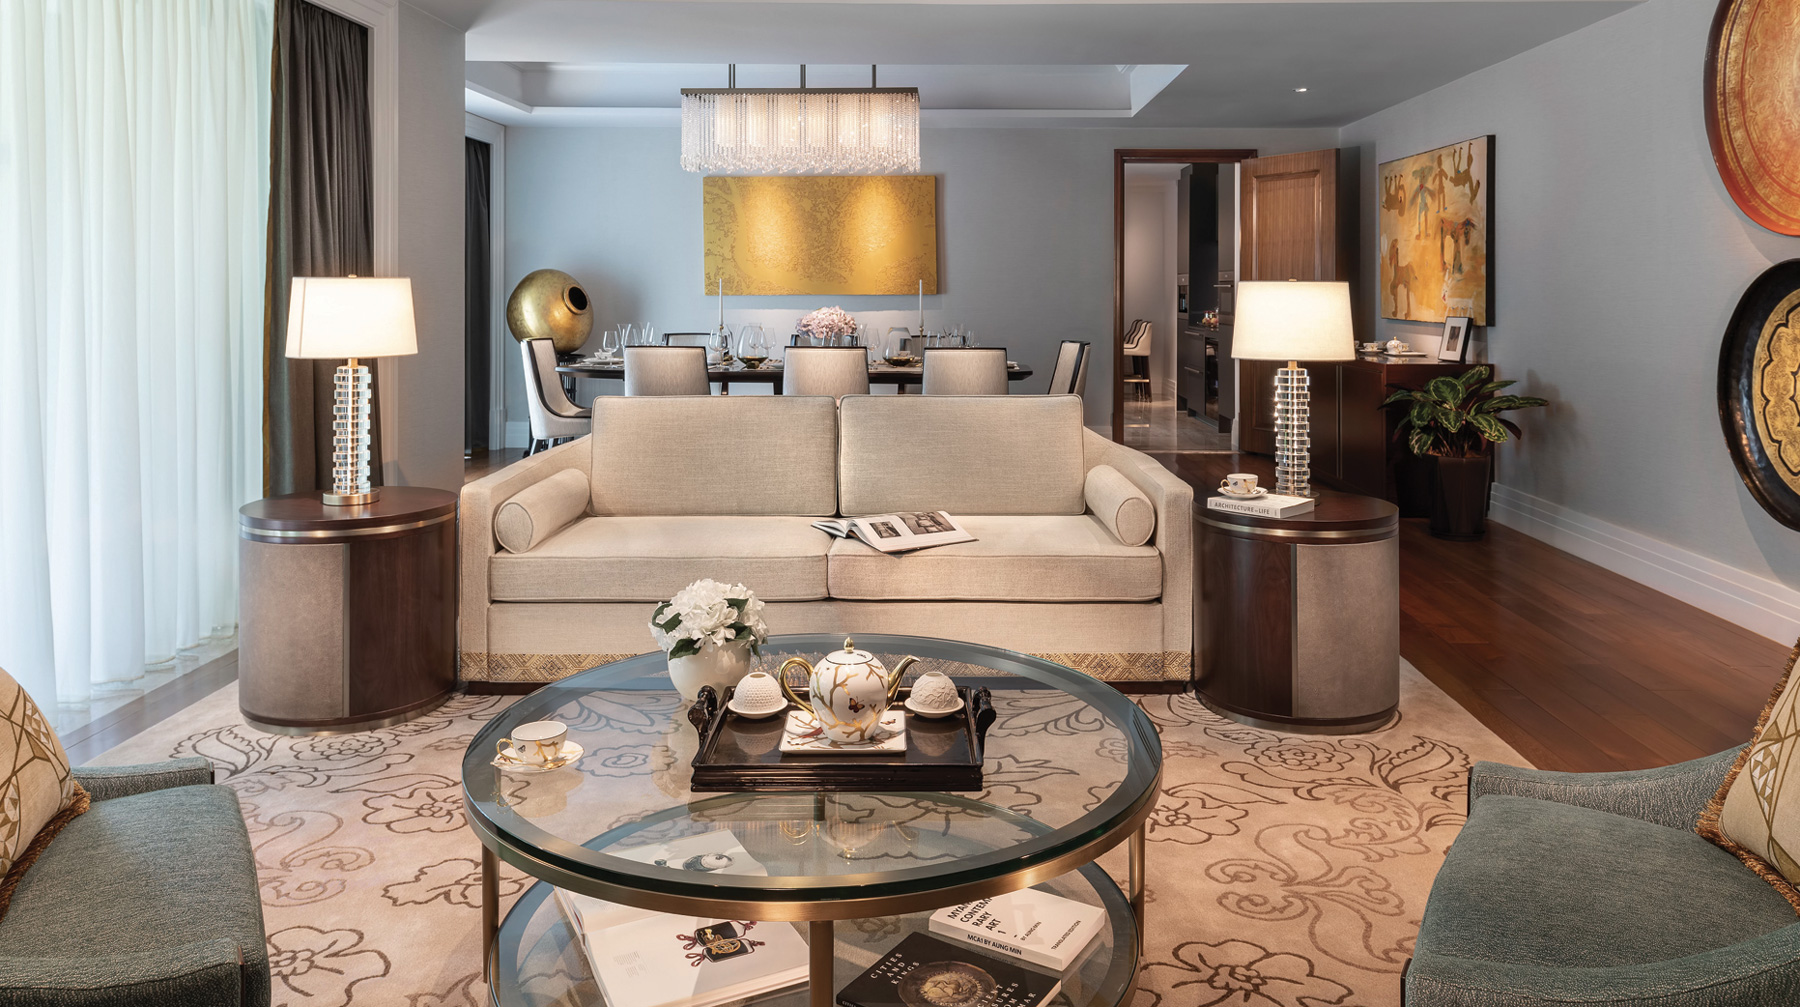 The Peninsula Residences Yangon Interior Dining and Living Room